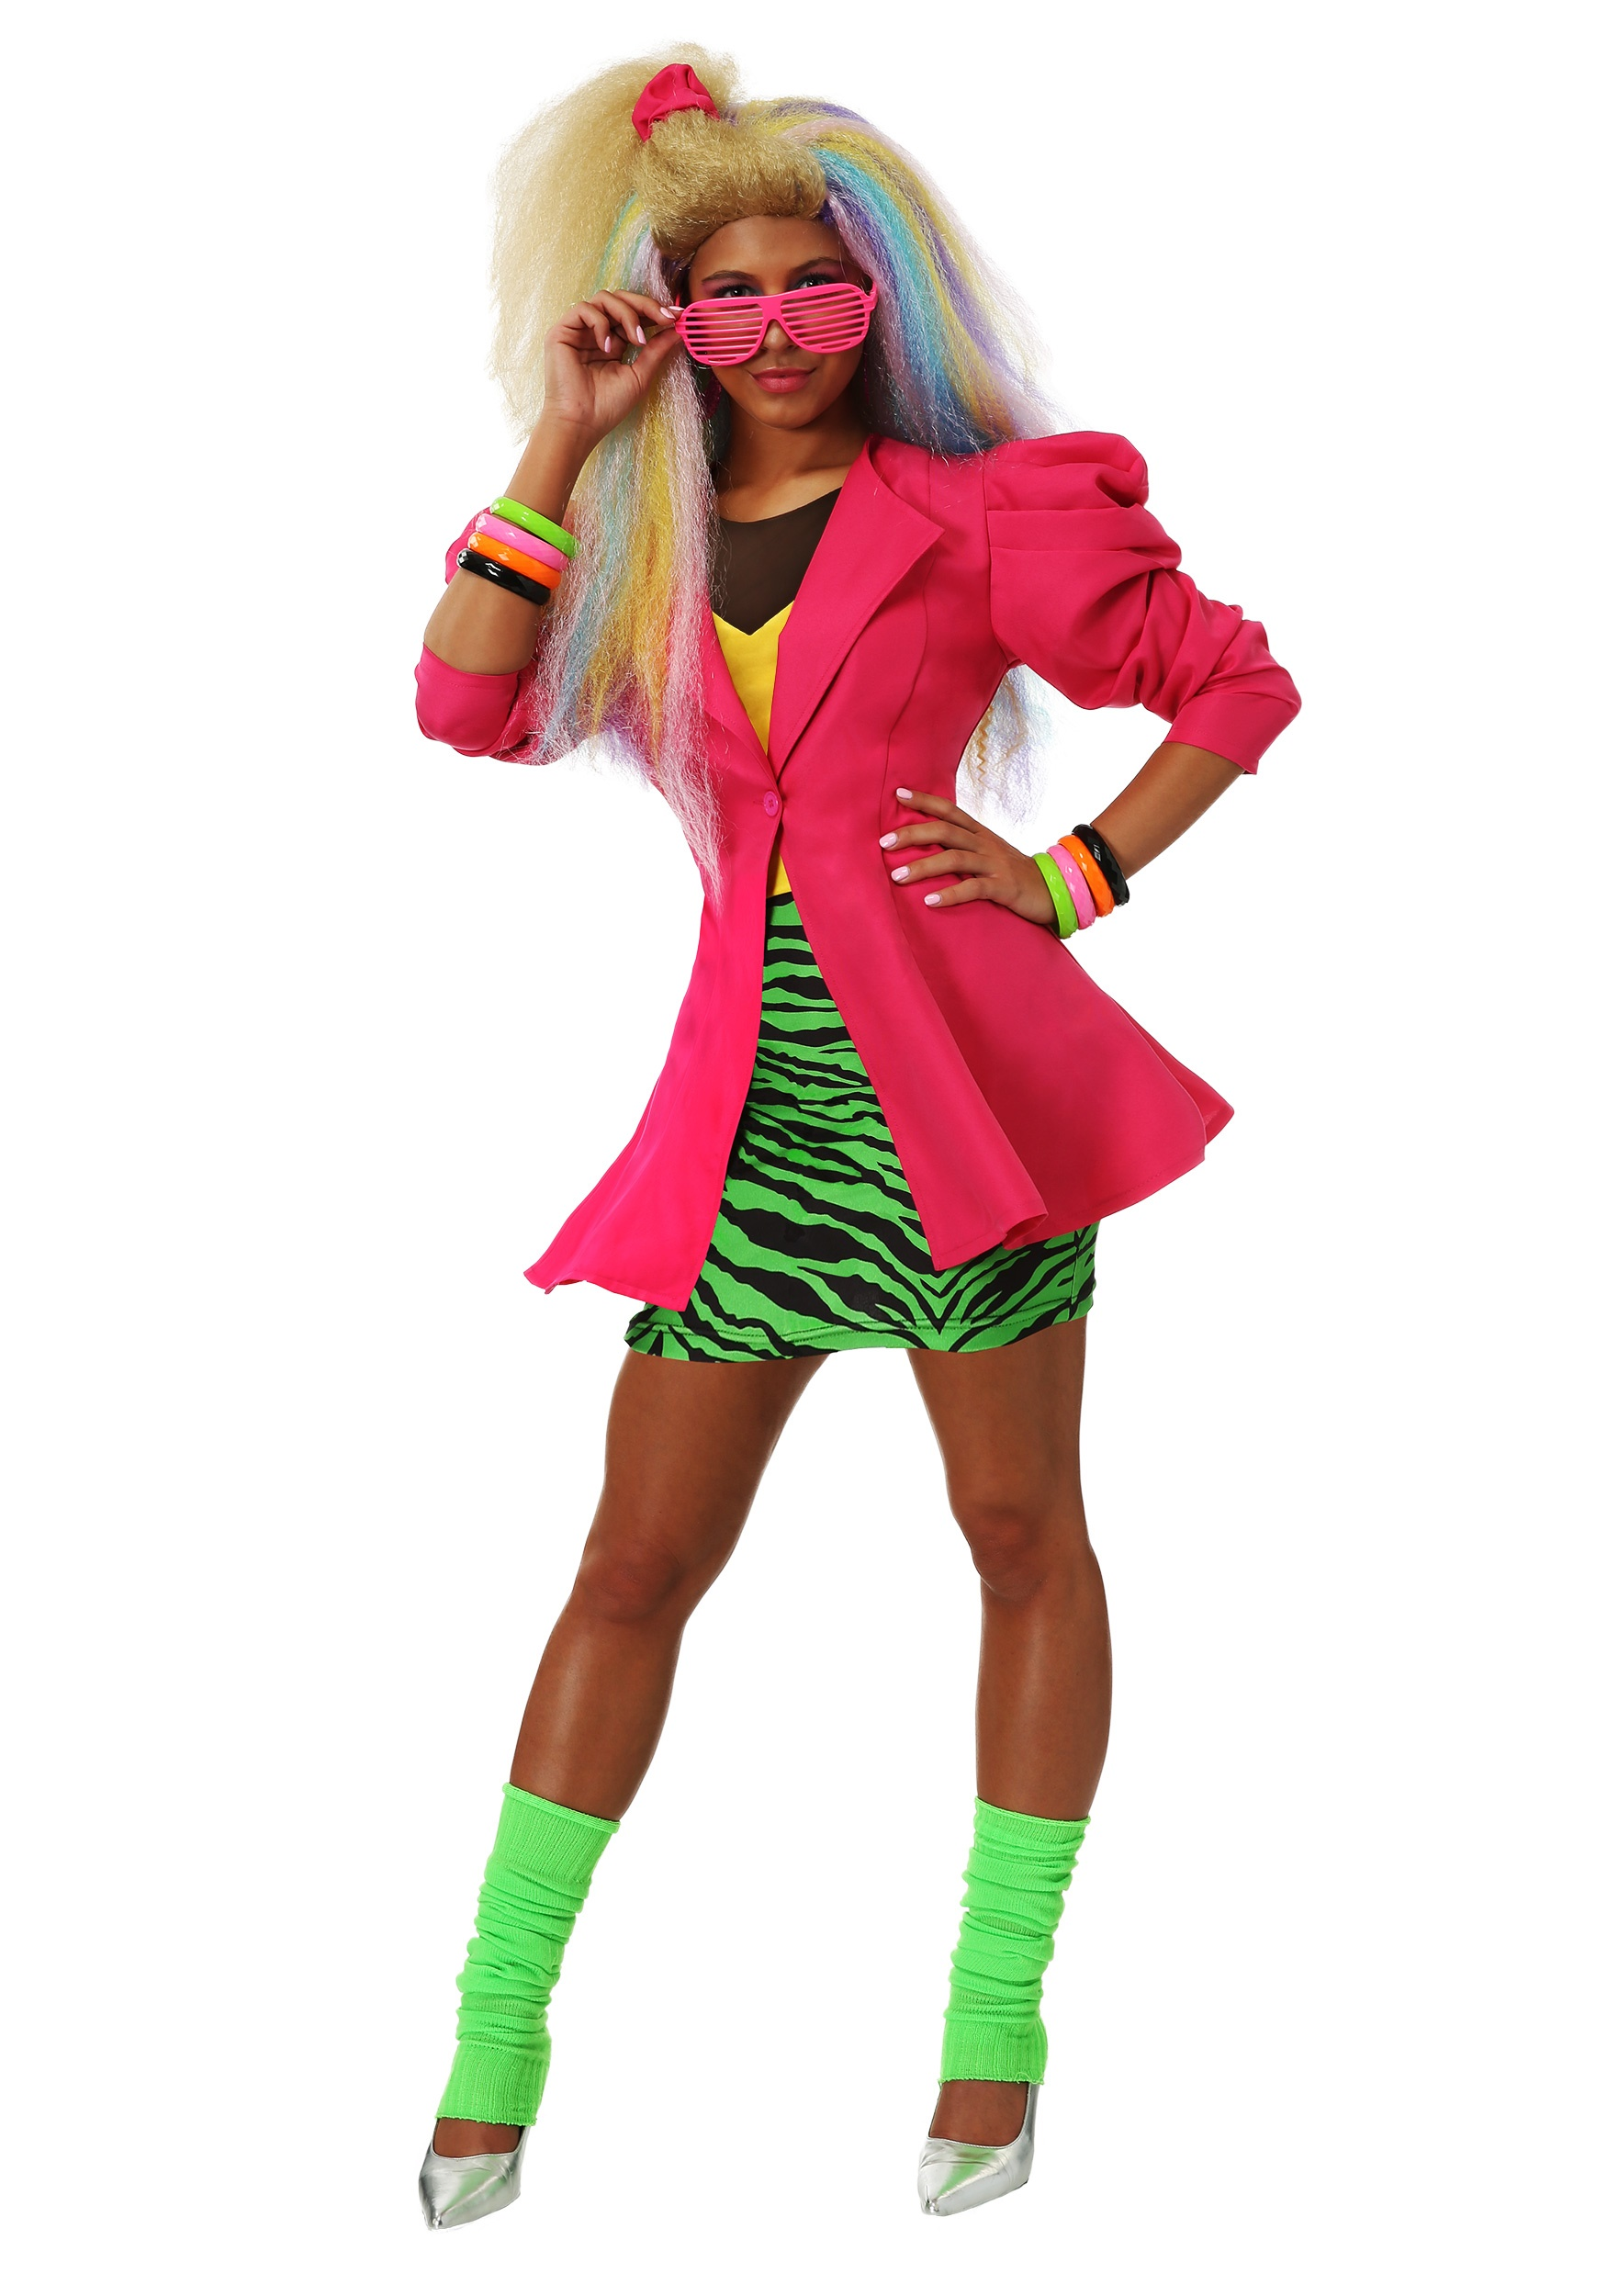 80s Fashion Trends 35 Iconic Looks From The Eighties: Plus Size 80's Valley Girl Women's Costume